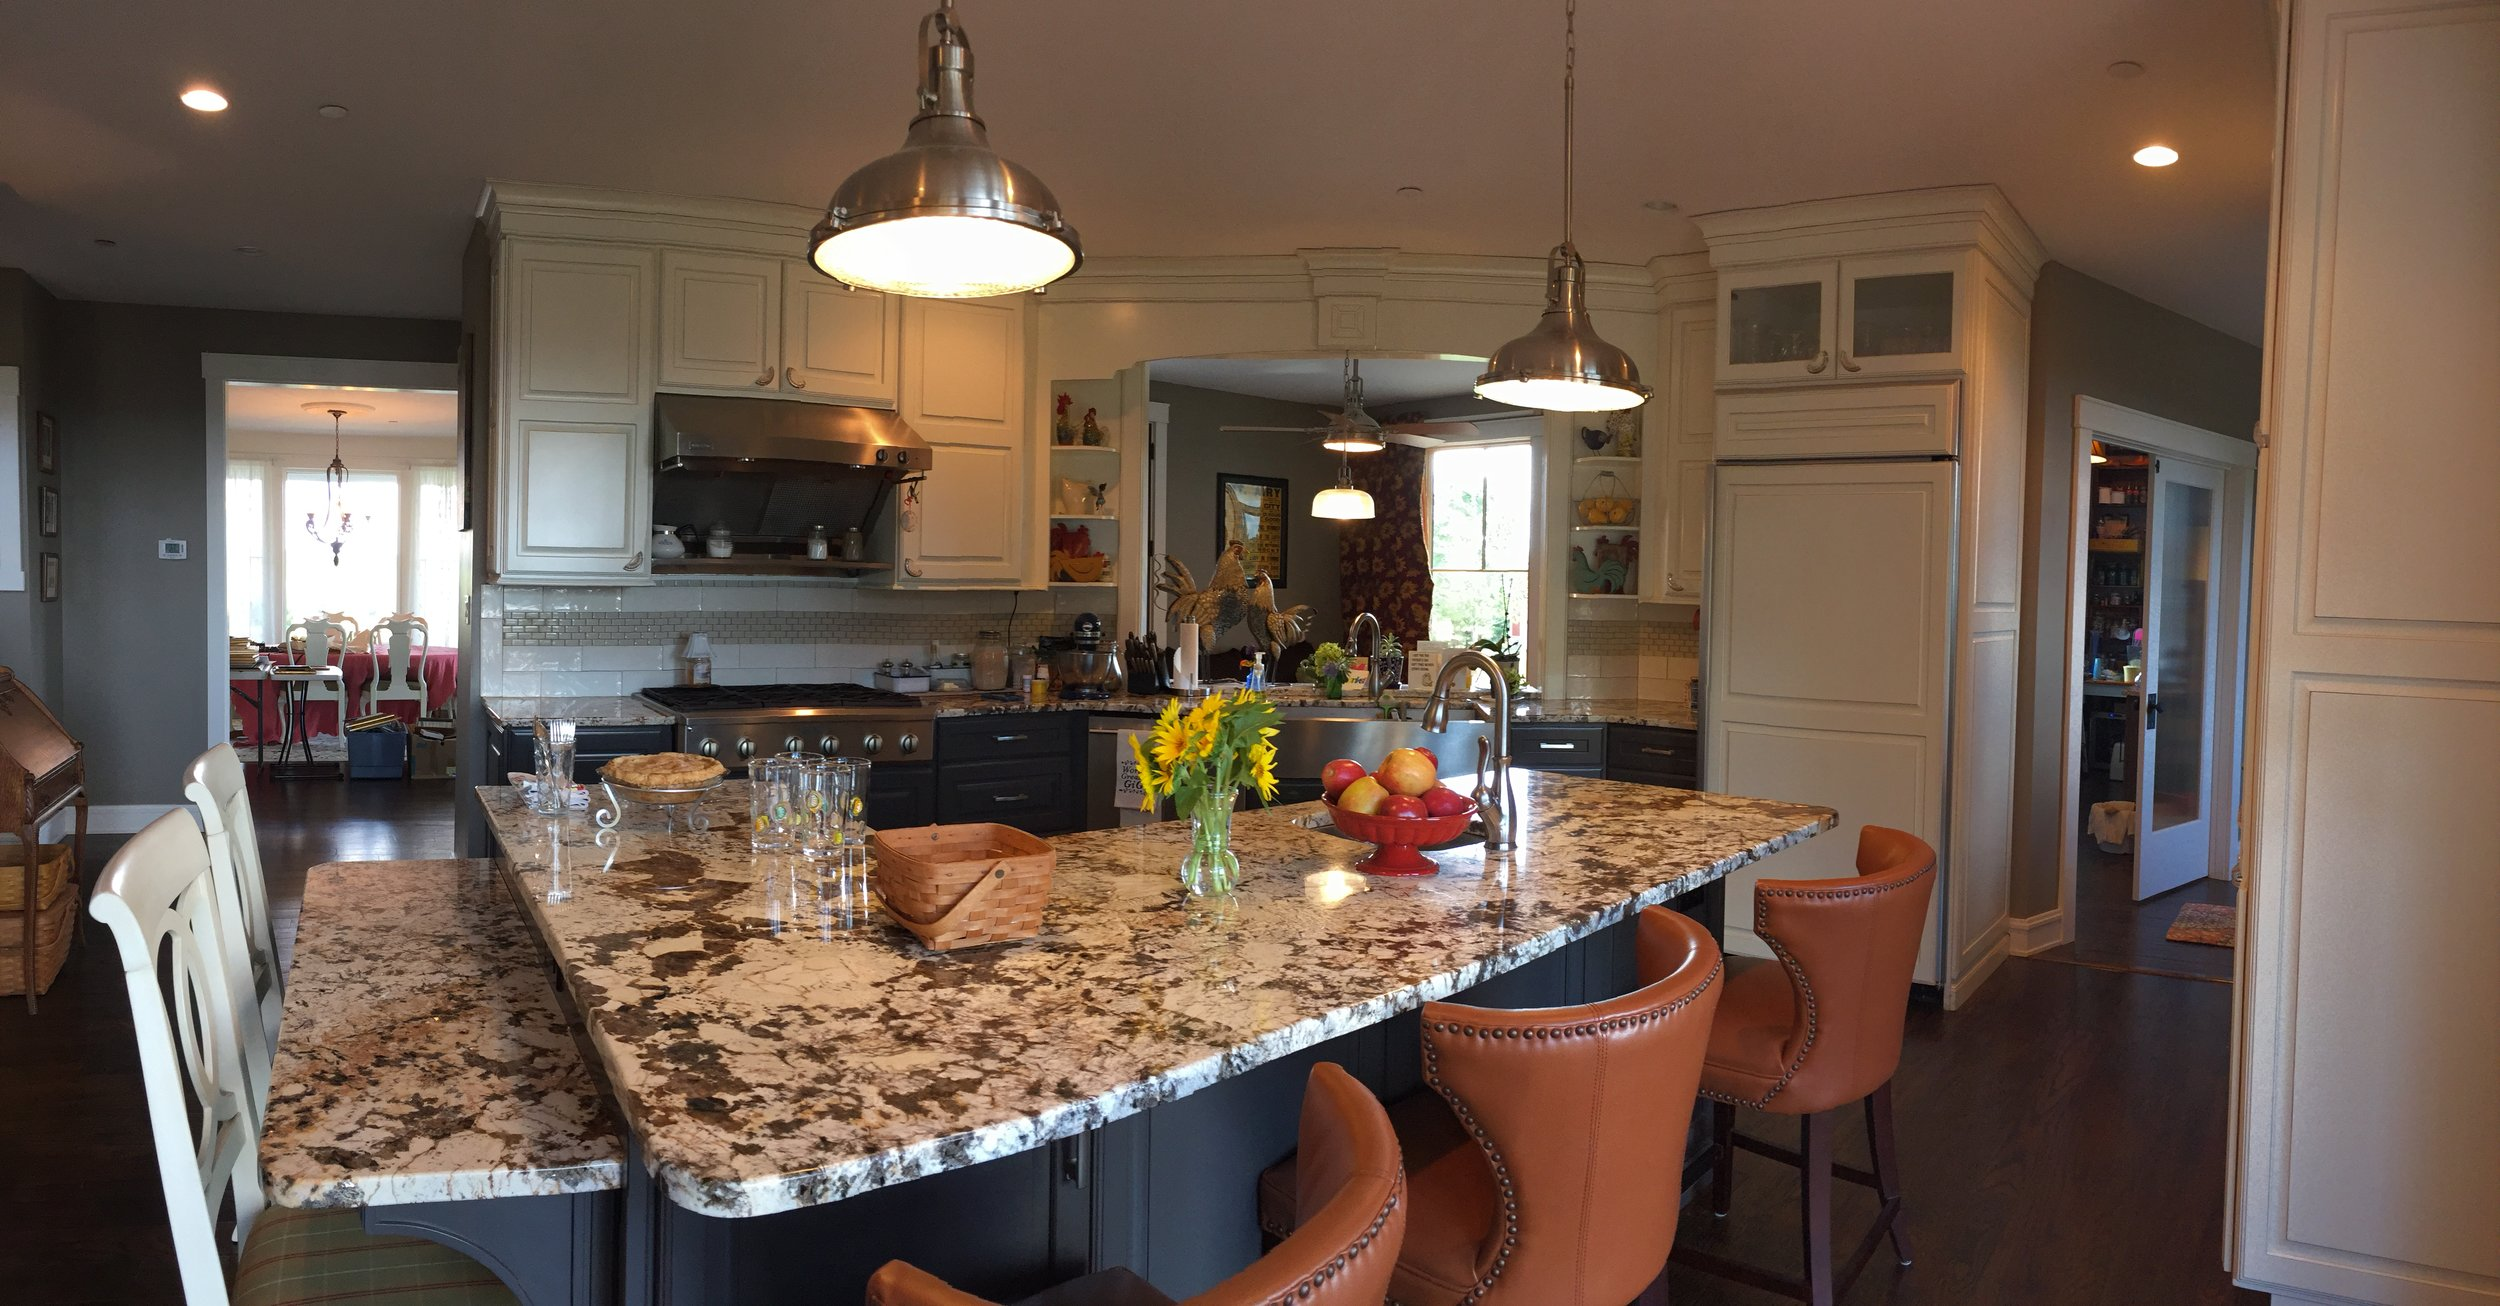 Two seating heights at the kitchen island, for visitors of various ages or levels of mobility.